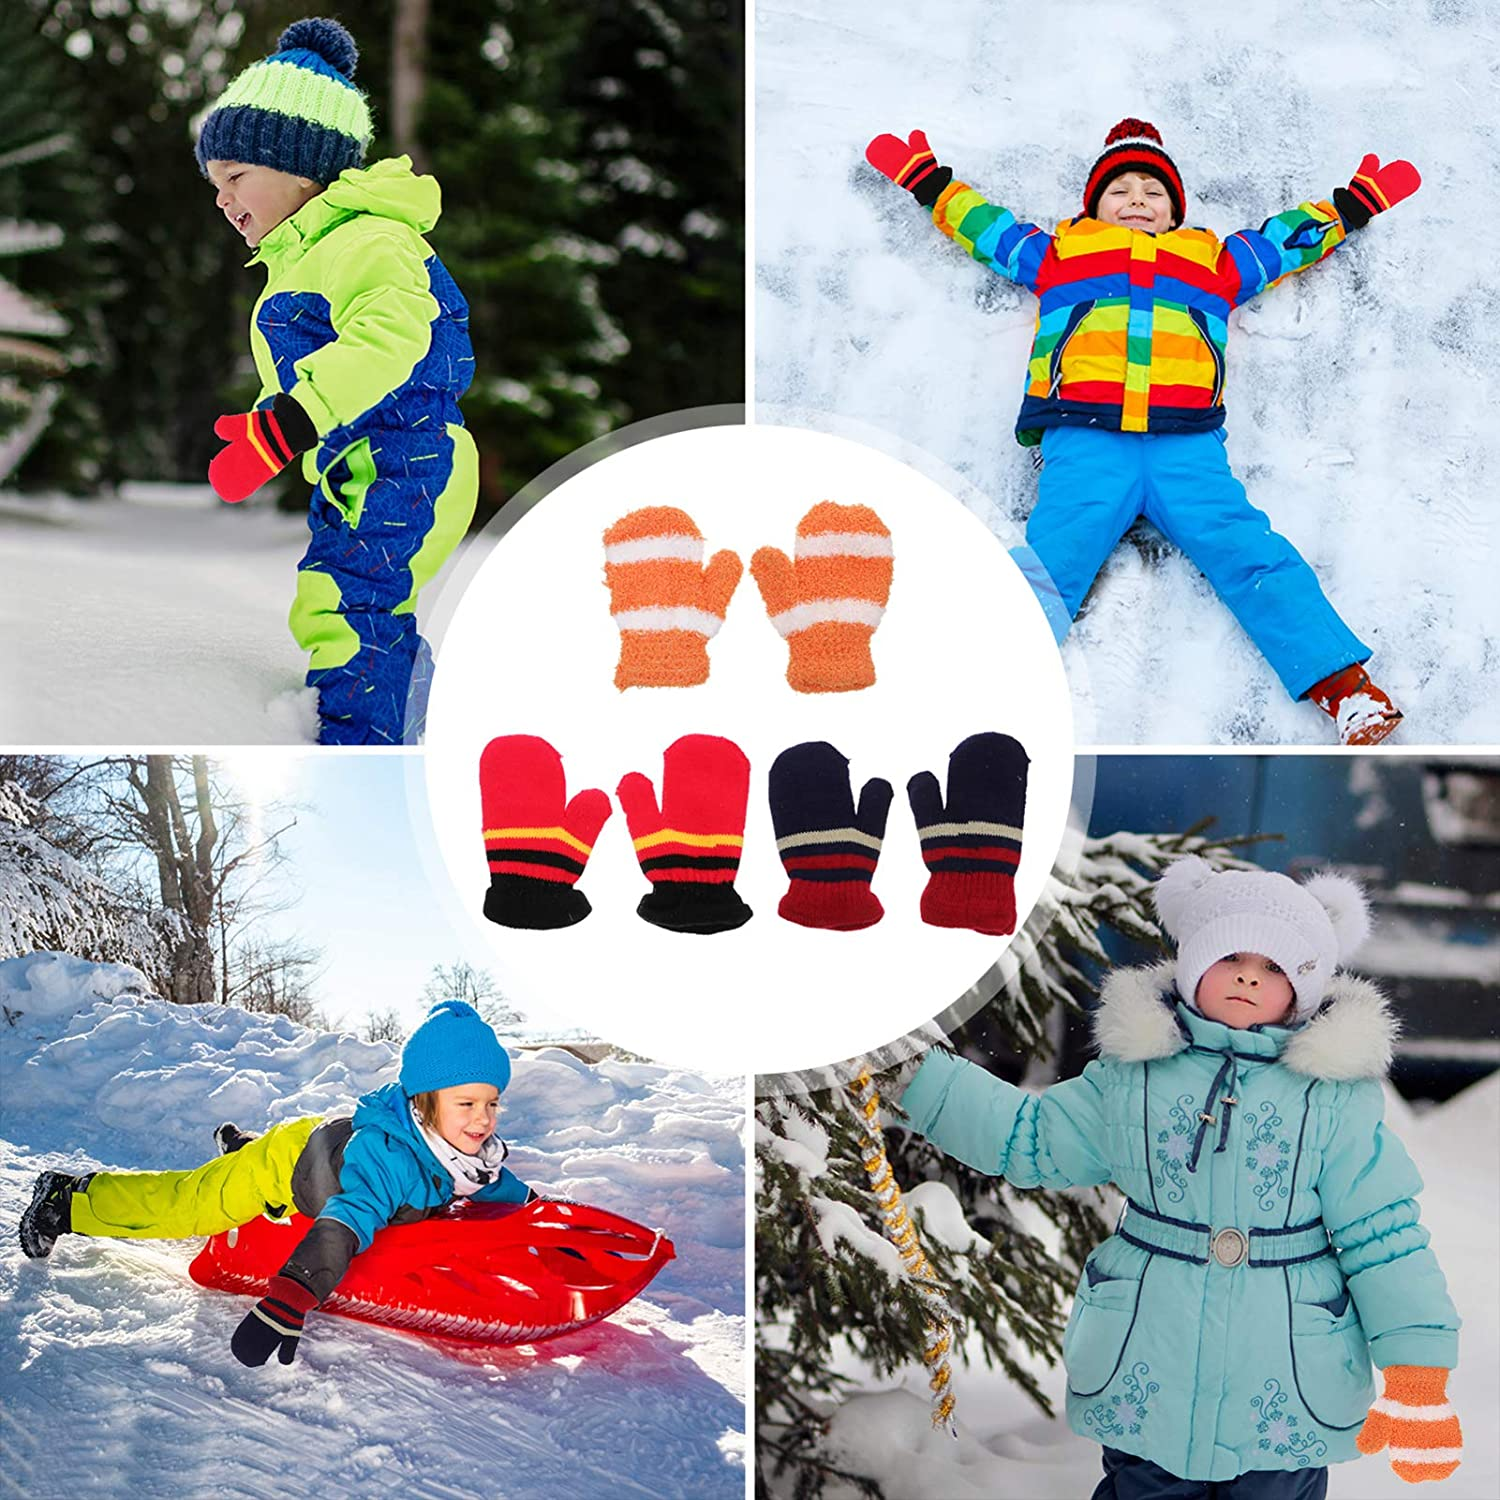 VALICLUD 3 Pairs Kids Winter Gloves Acrylic Fibers Knit Mittens Warm Plush Stretchy Knit Gloves for Toddler Baby Girls Boys Christmas New Year Gifts Mixed Color